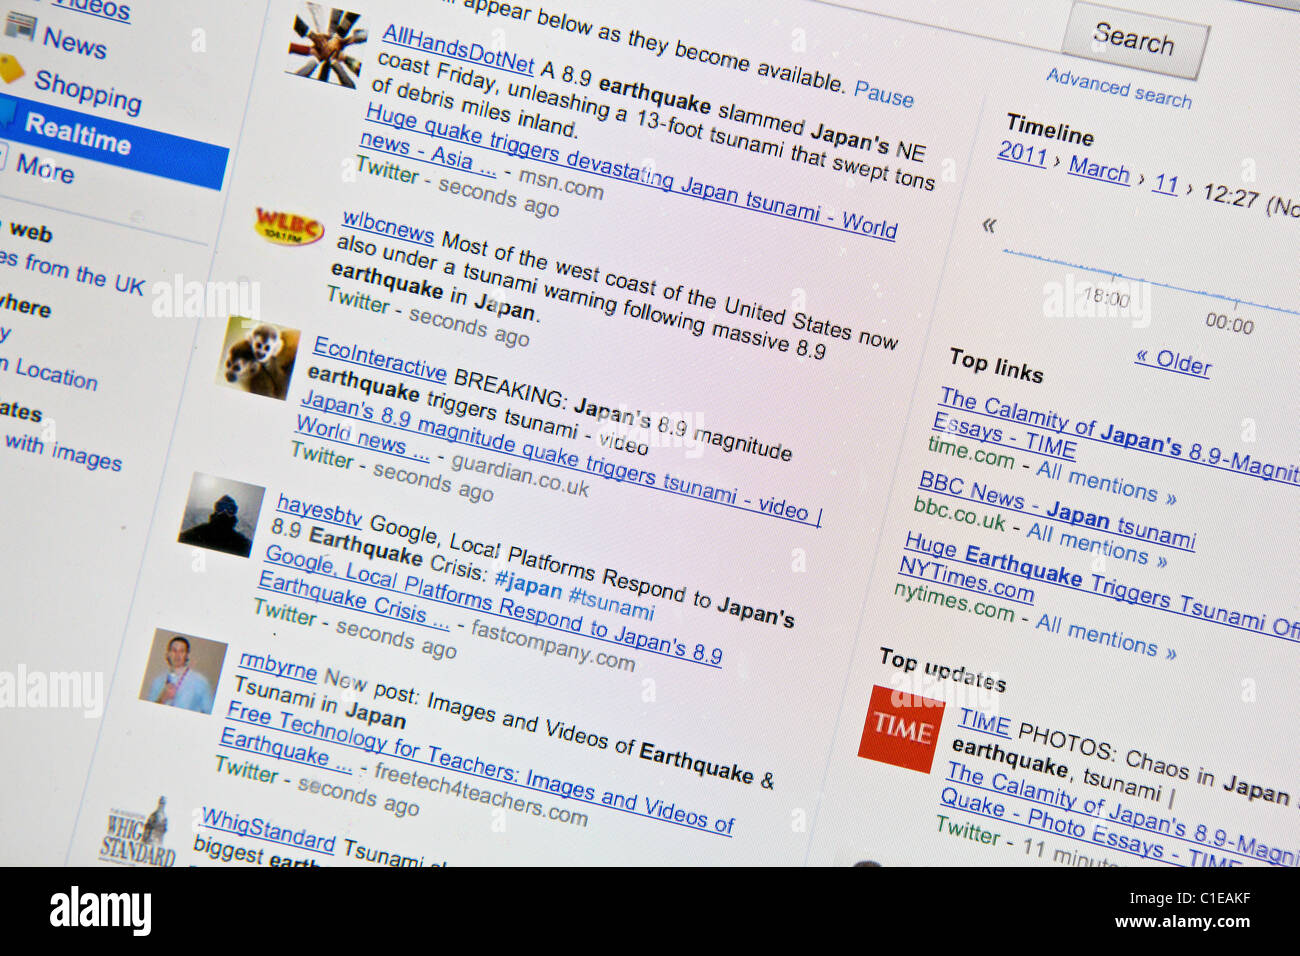 Japan earthquake and tsunami. 11.03.11. Screen grab from internet as realtime news emerges from Japan through Google. - Stock Image